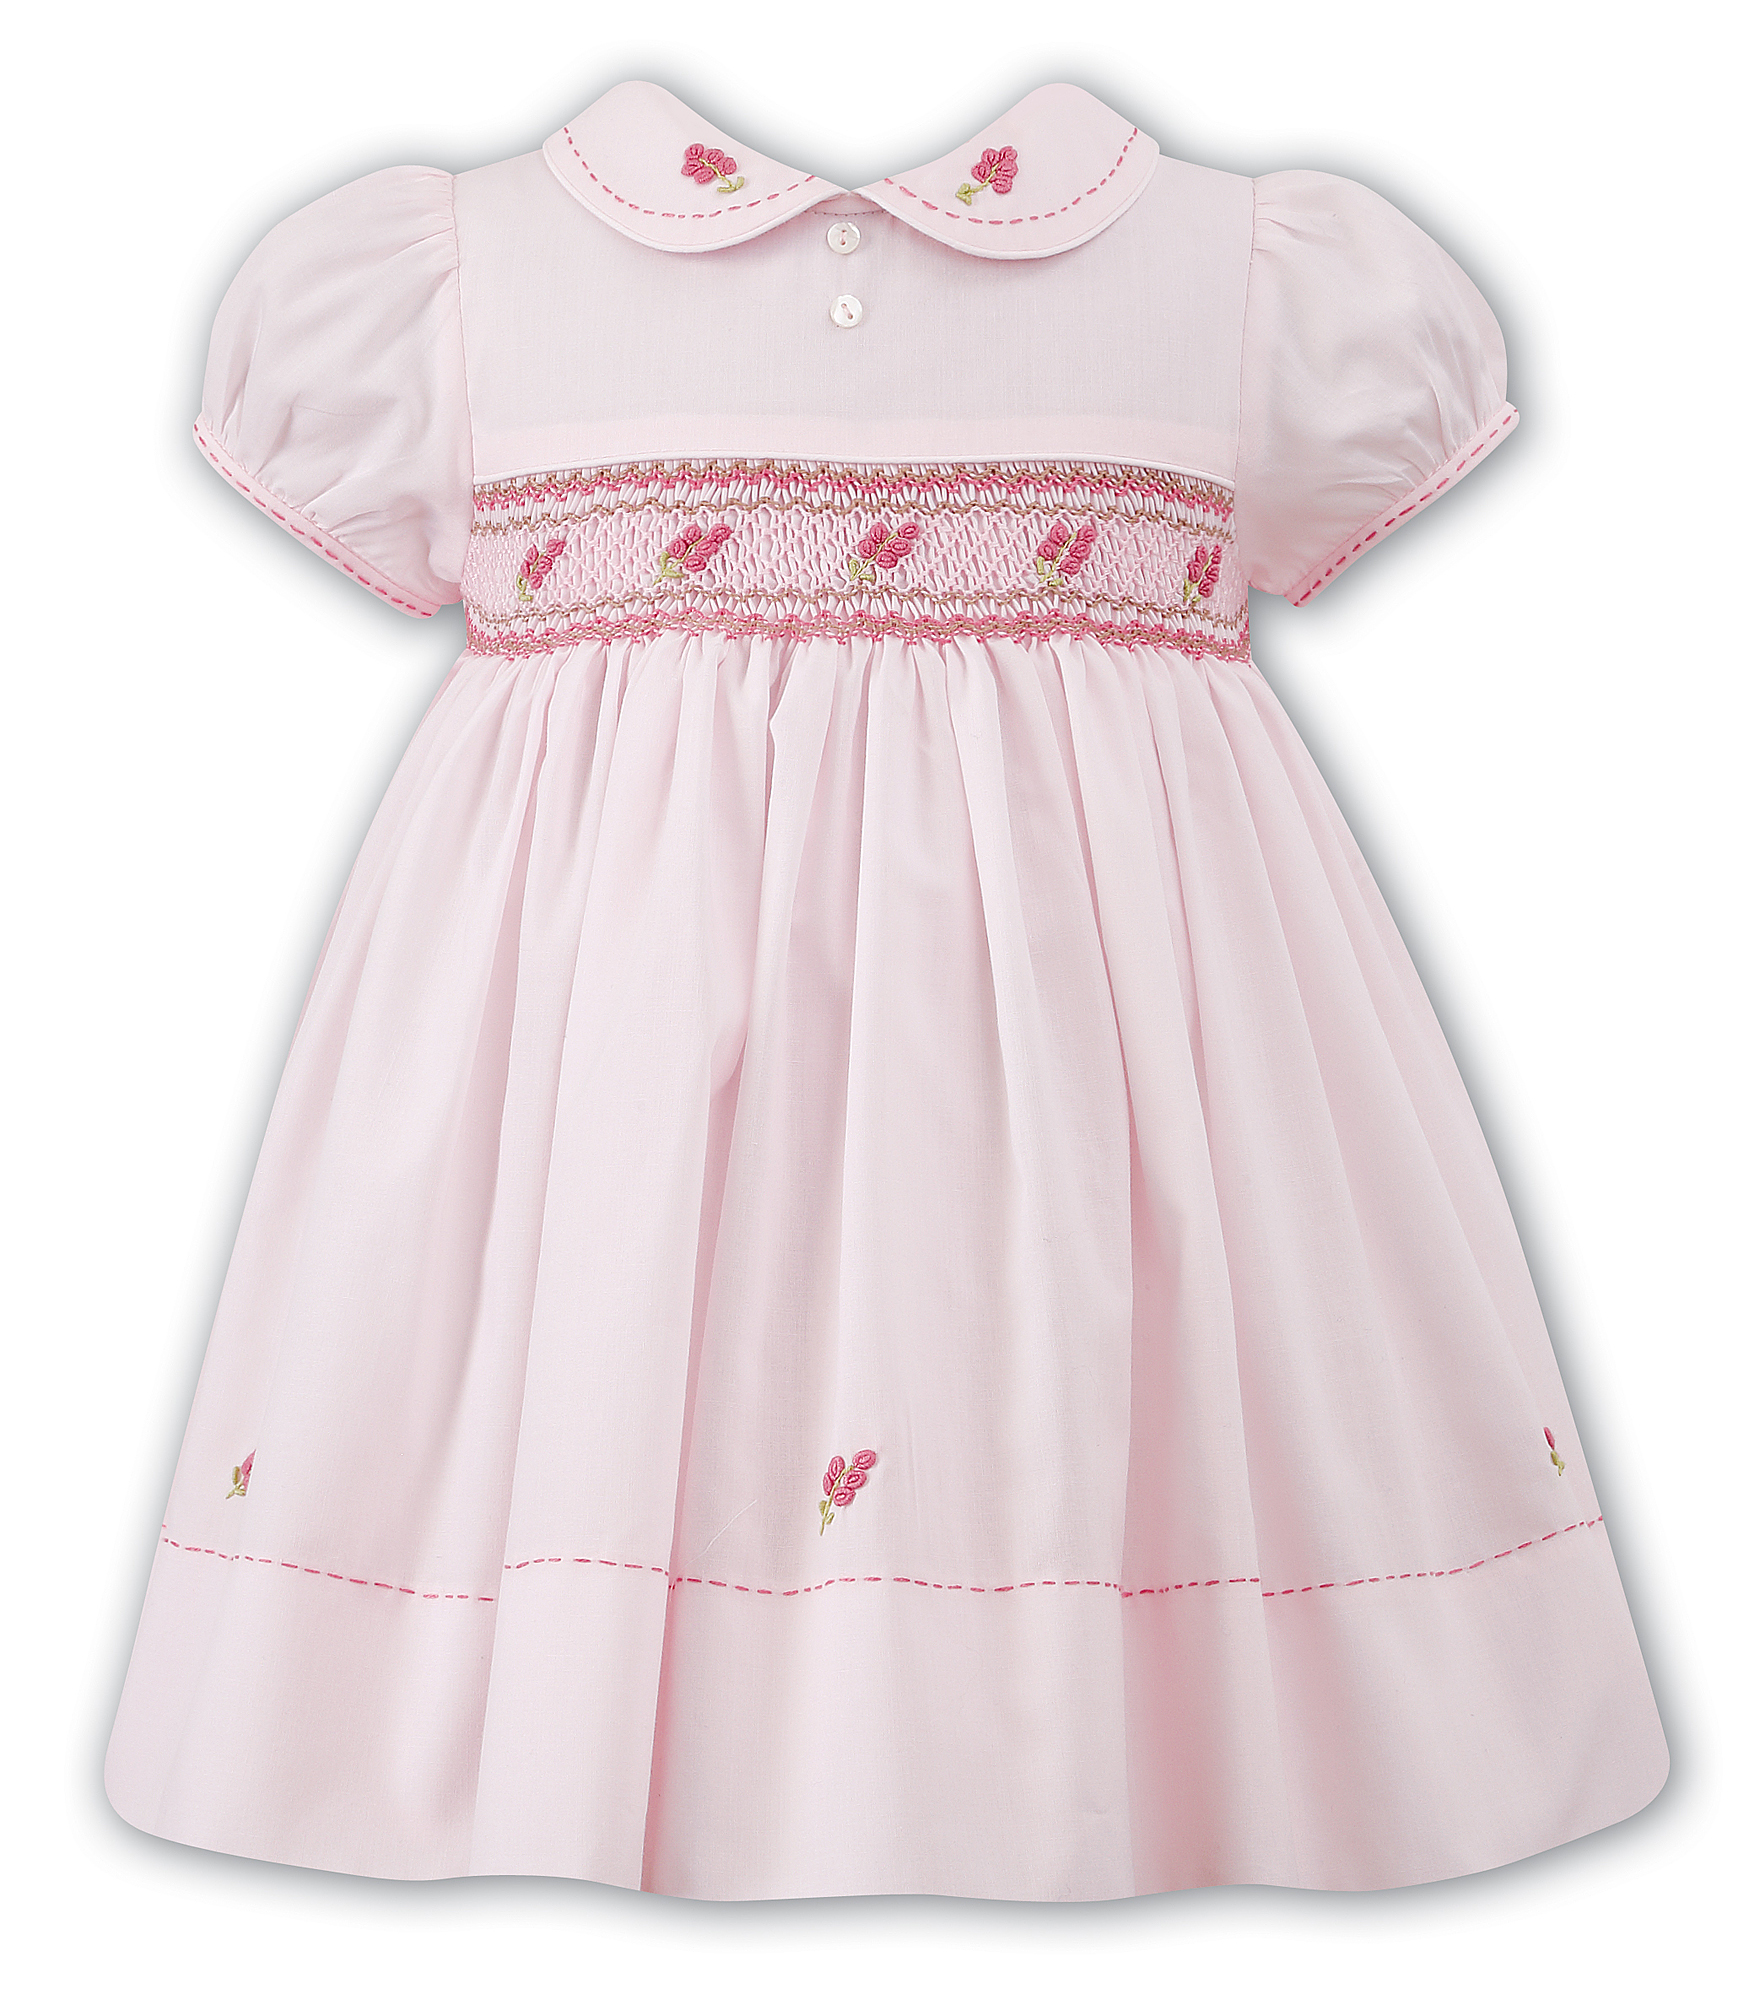 Blossom Dress Baby Boutique Clothing